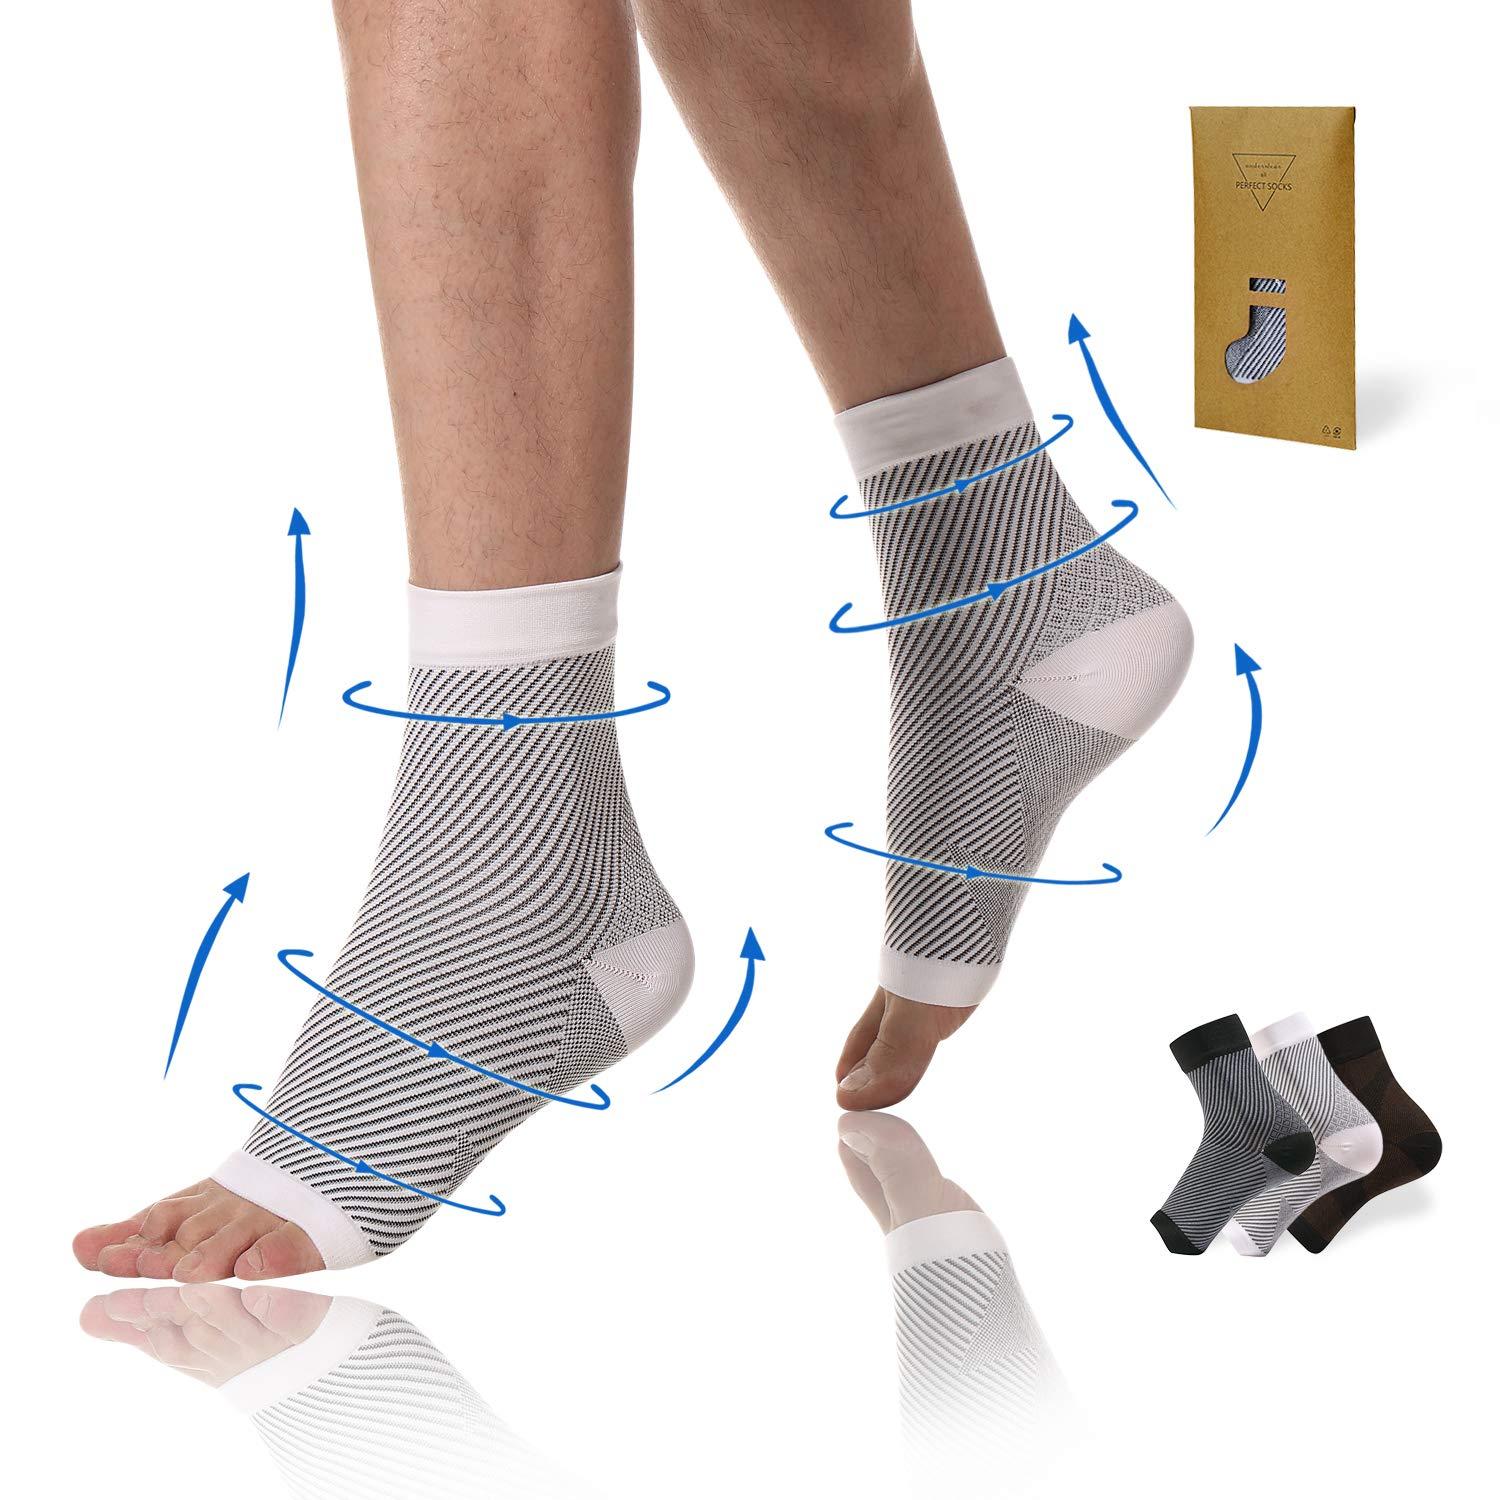 Plantar Fasciitis Compression Socks Increase Blood Circulation Relieve Foot Arch Pain 20-30 mmHg Foot Sleeves Ankle Sleeve for Ankle//Heel Support Reduce Foot Swelling 3 Pairs,6-10